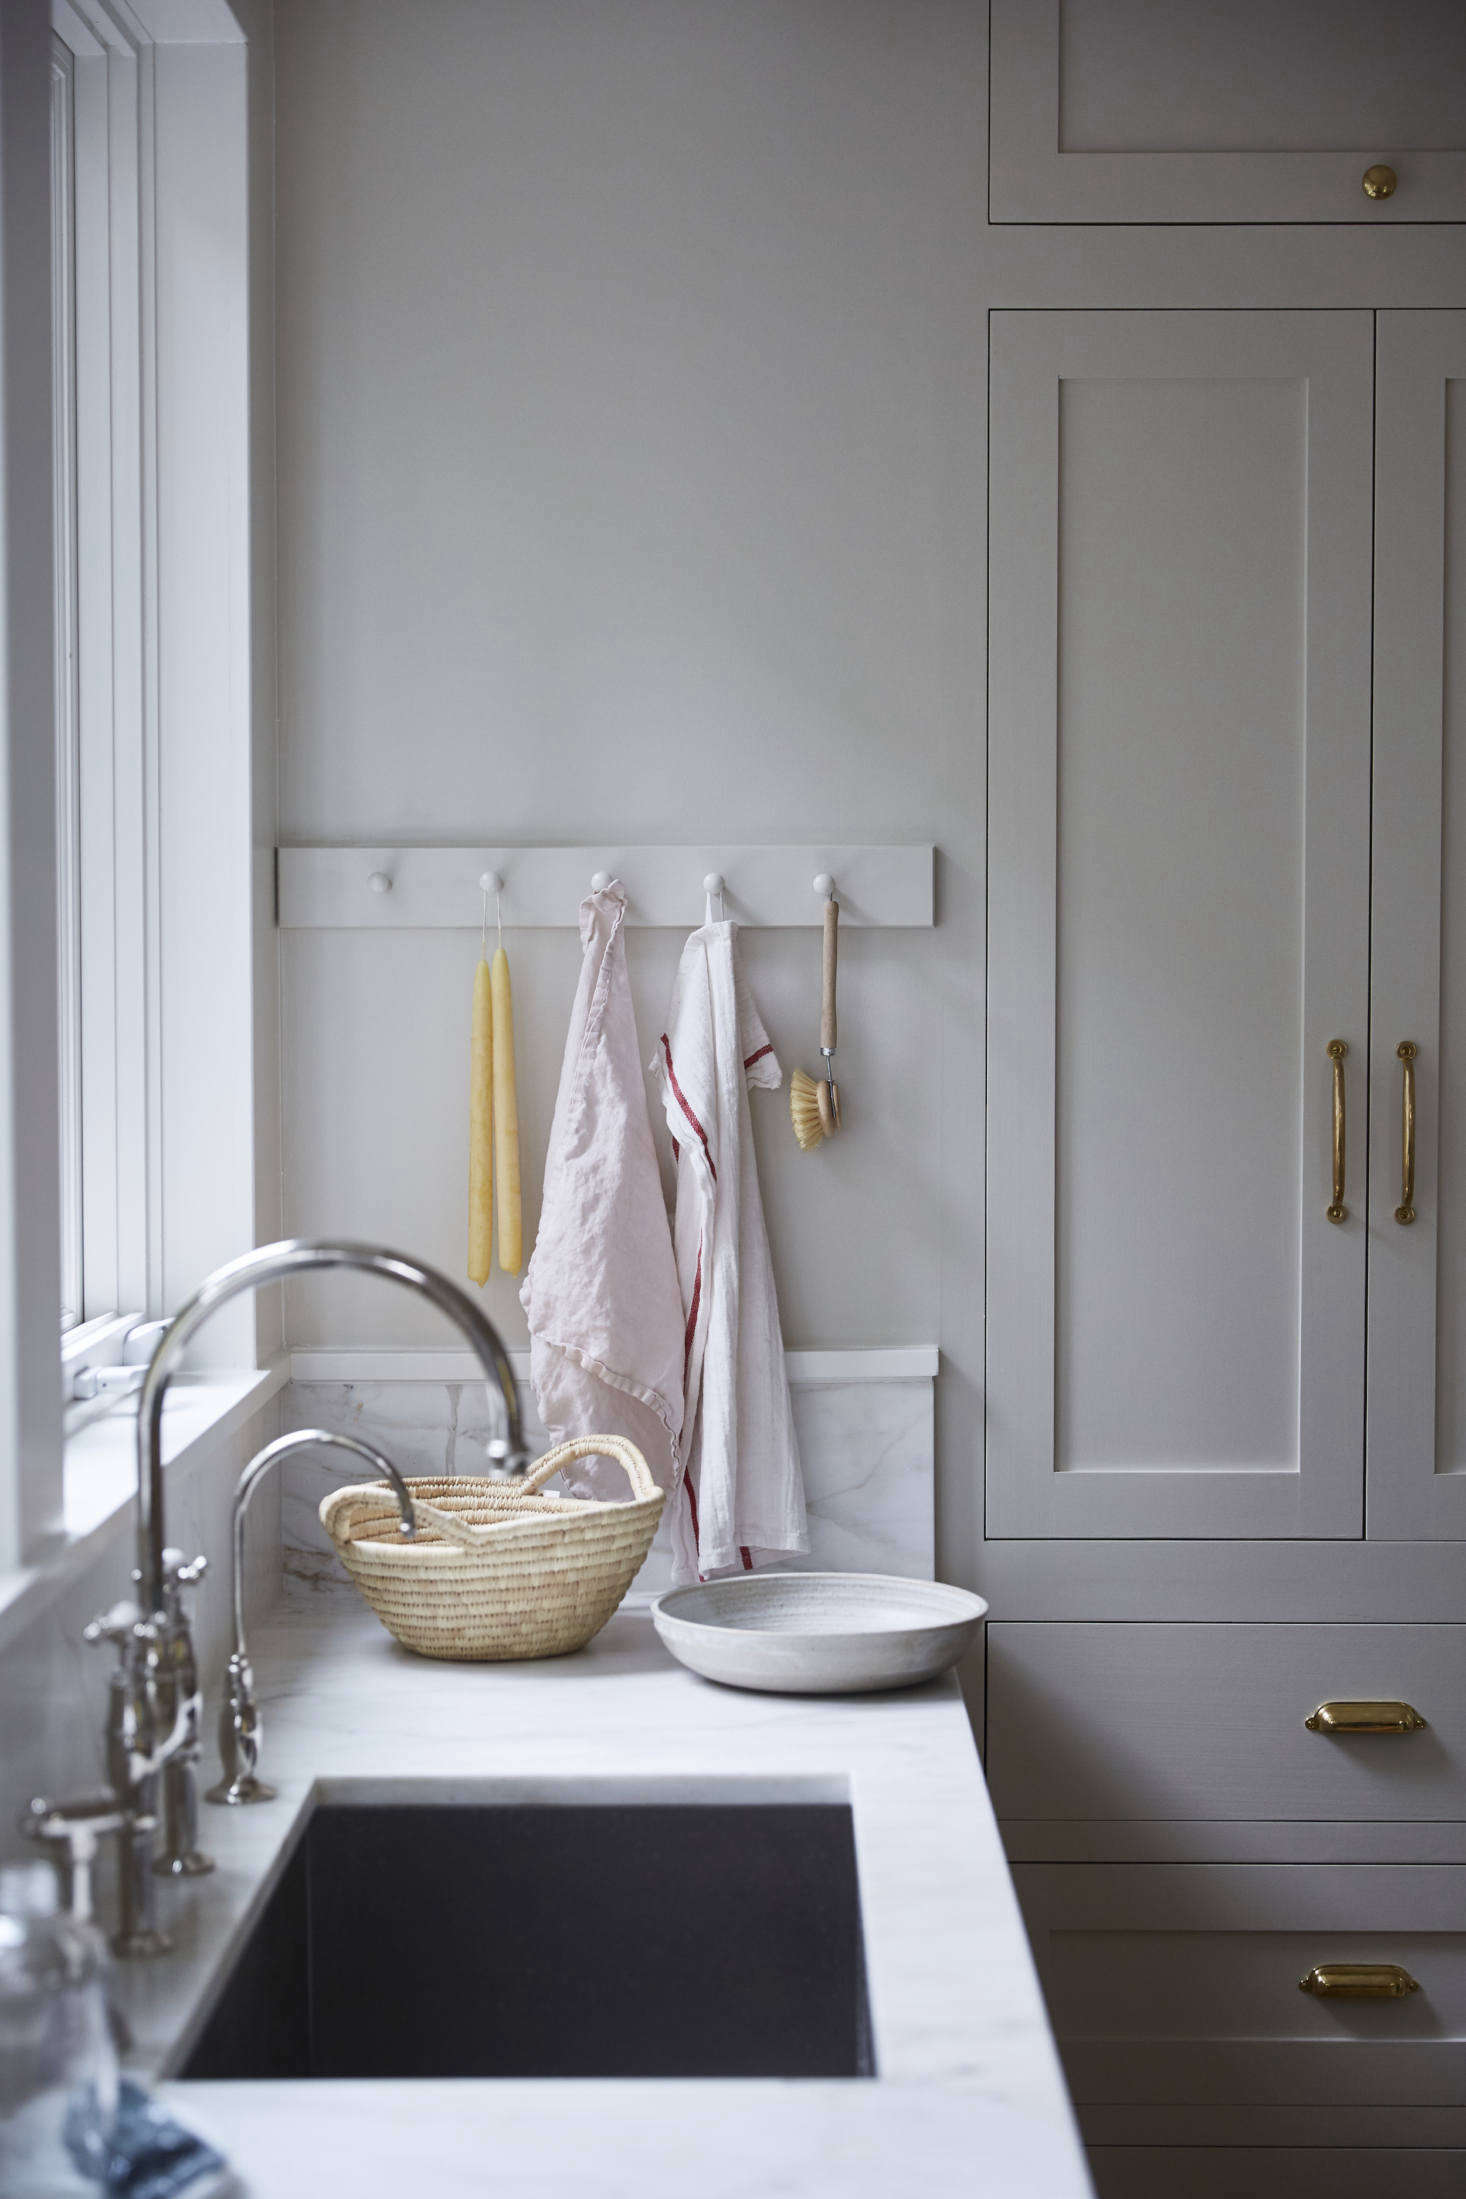 The Rohl, Perrin & Rowe bridge faucet tempers the brass hardware (sourced from Rejuvenation) throughout the kitchen. (See our roundup of traditional bridge faucets here.)